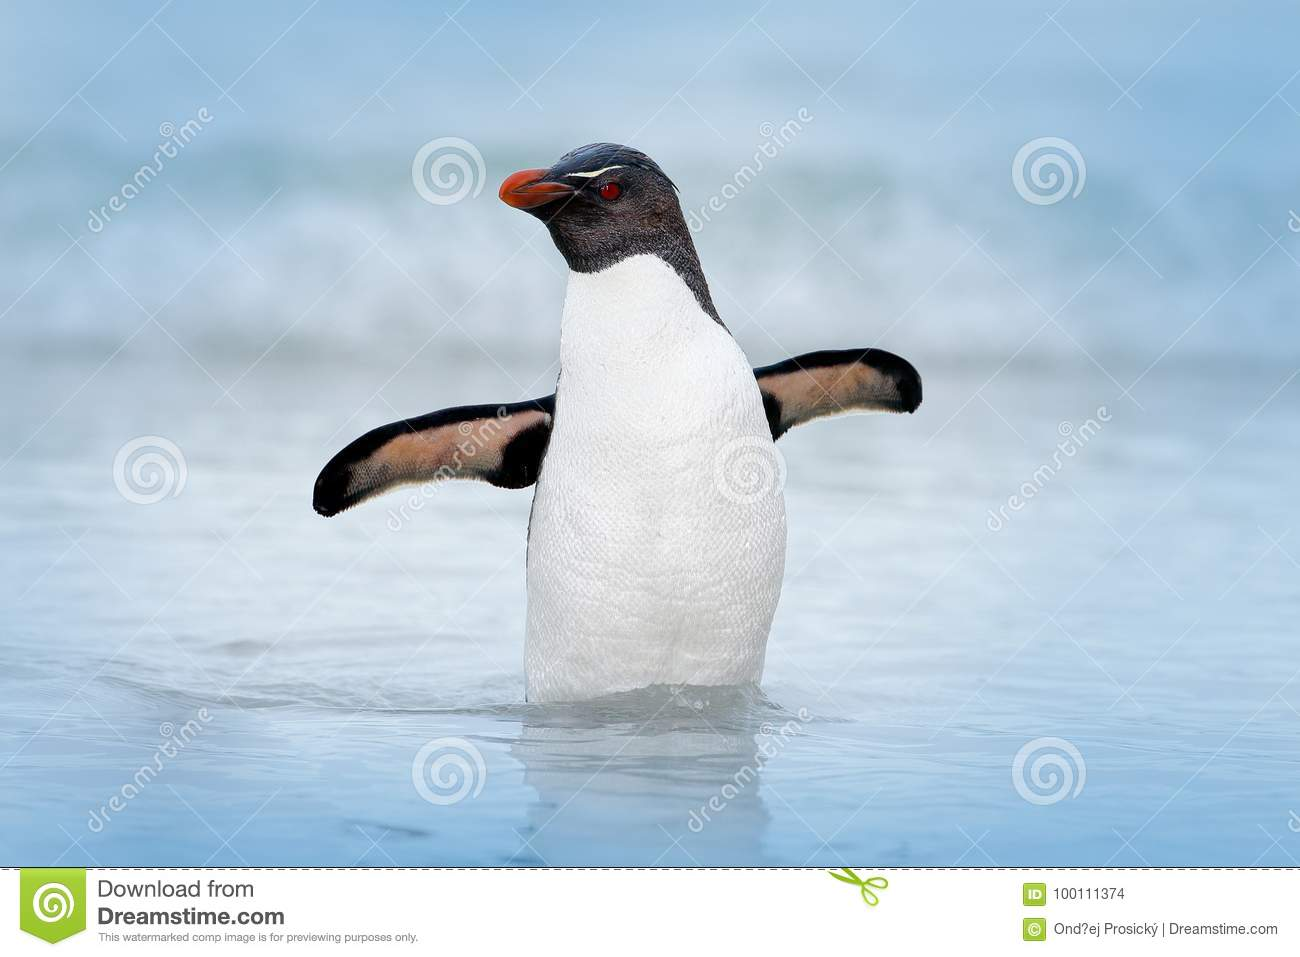 Rockhopper penguin, Eudyptes chrysocome, swimming in the water, flight above waves. Black and white sea bird, Sea Lion Island, Fa